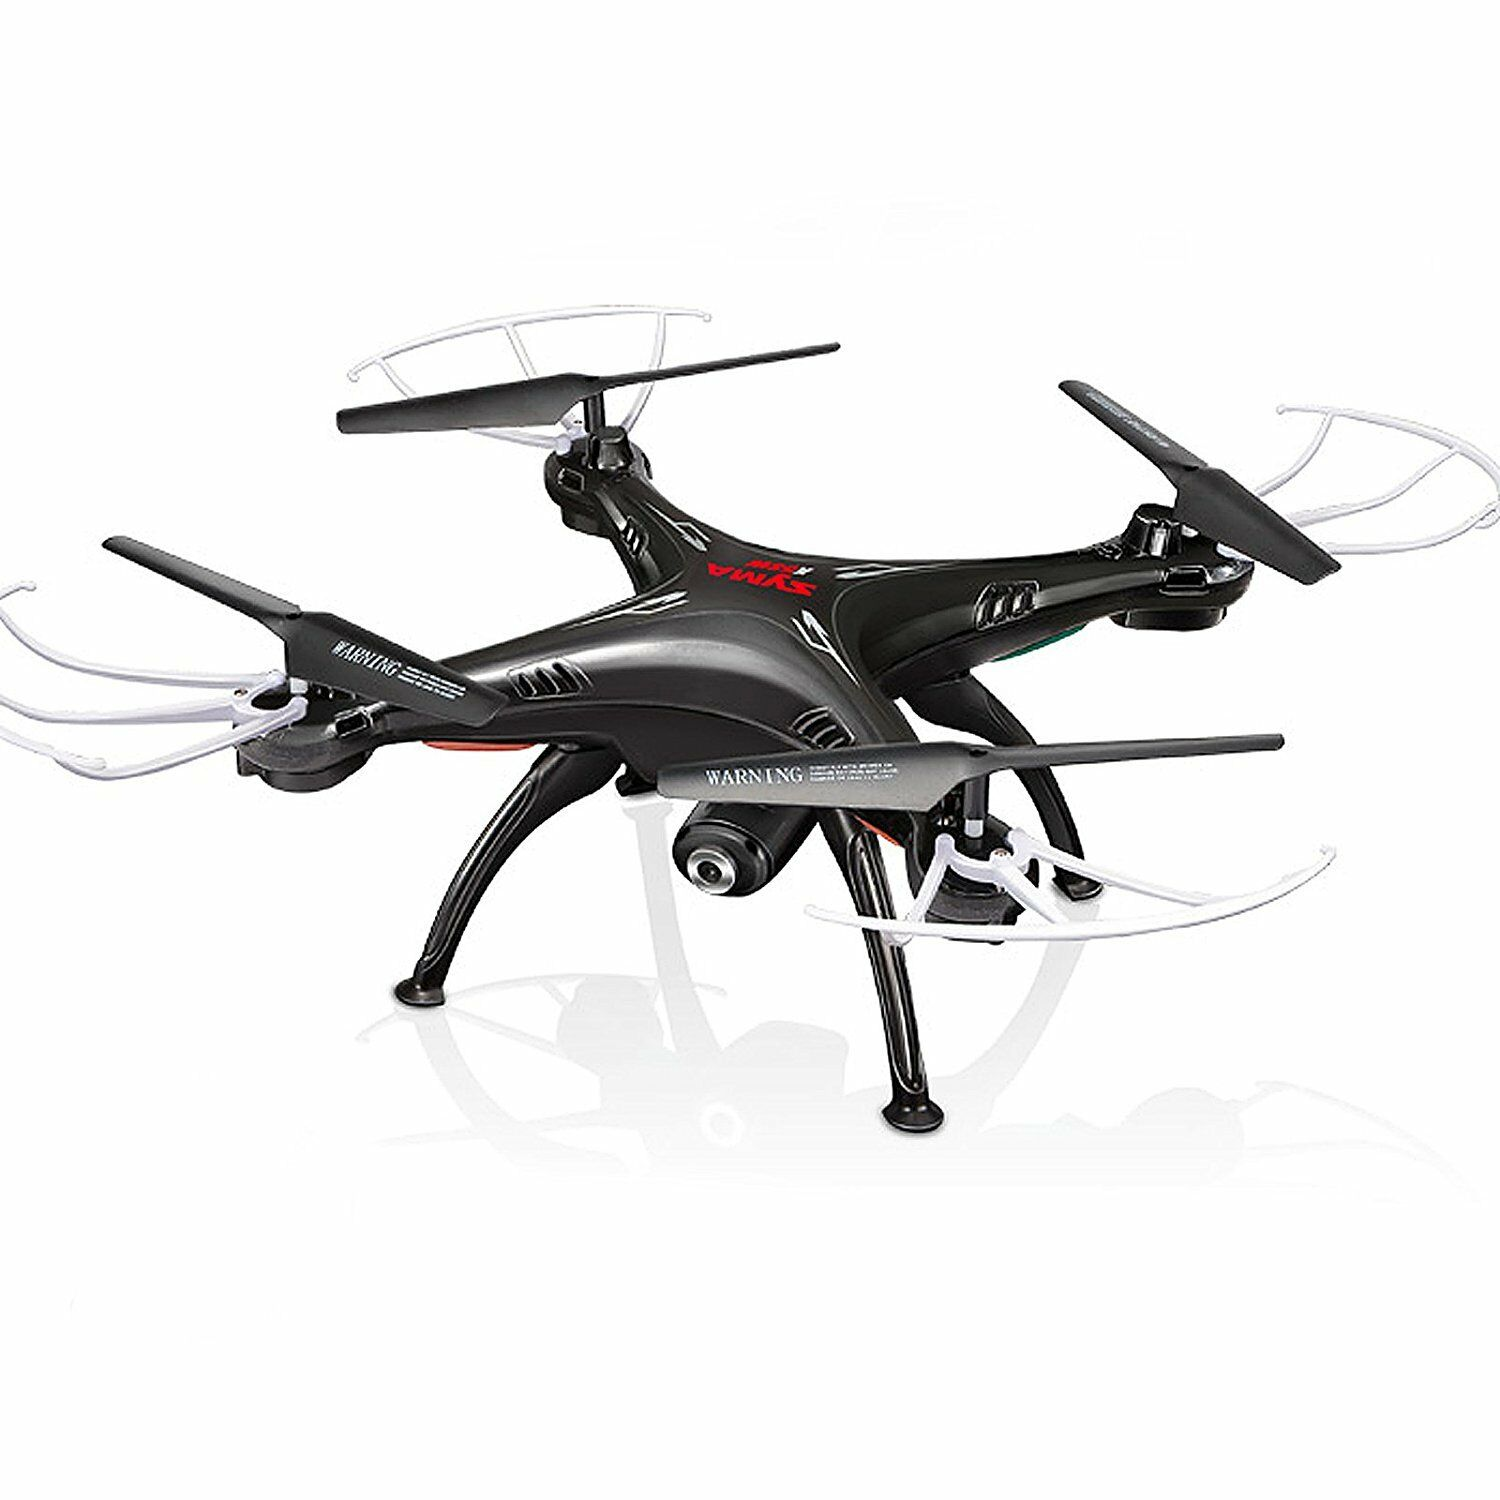 Syma X5SW-V3 RC Quadcopter Wifi FPV Drone With HD Camera 2.4Ghz 4CH RTF Black